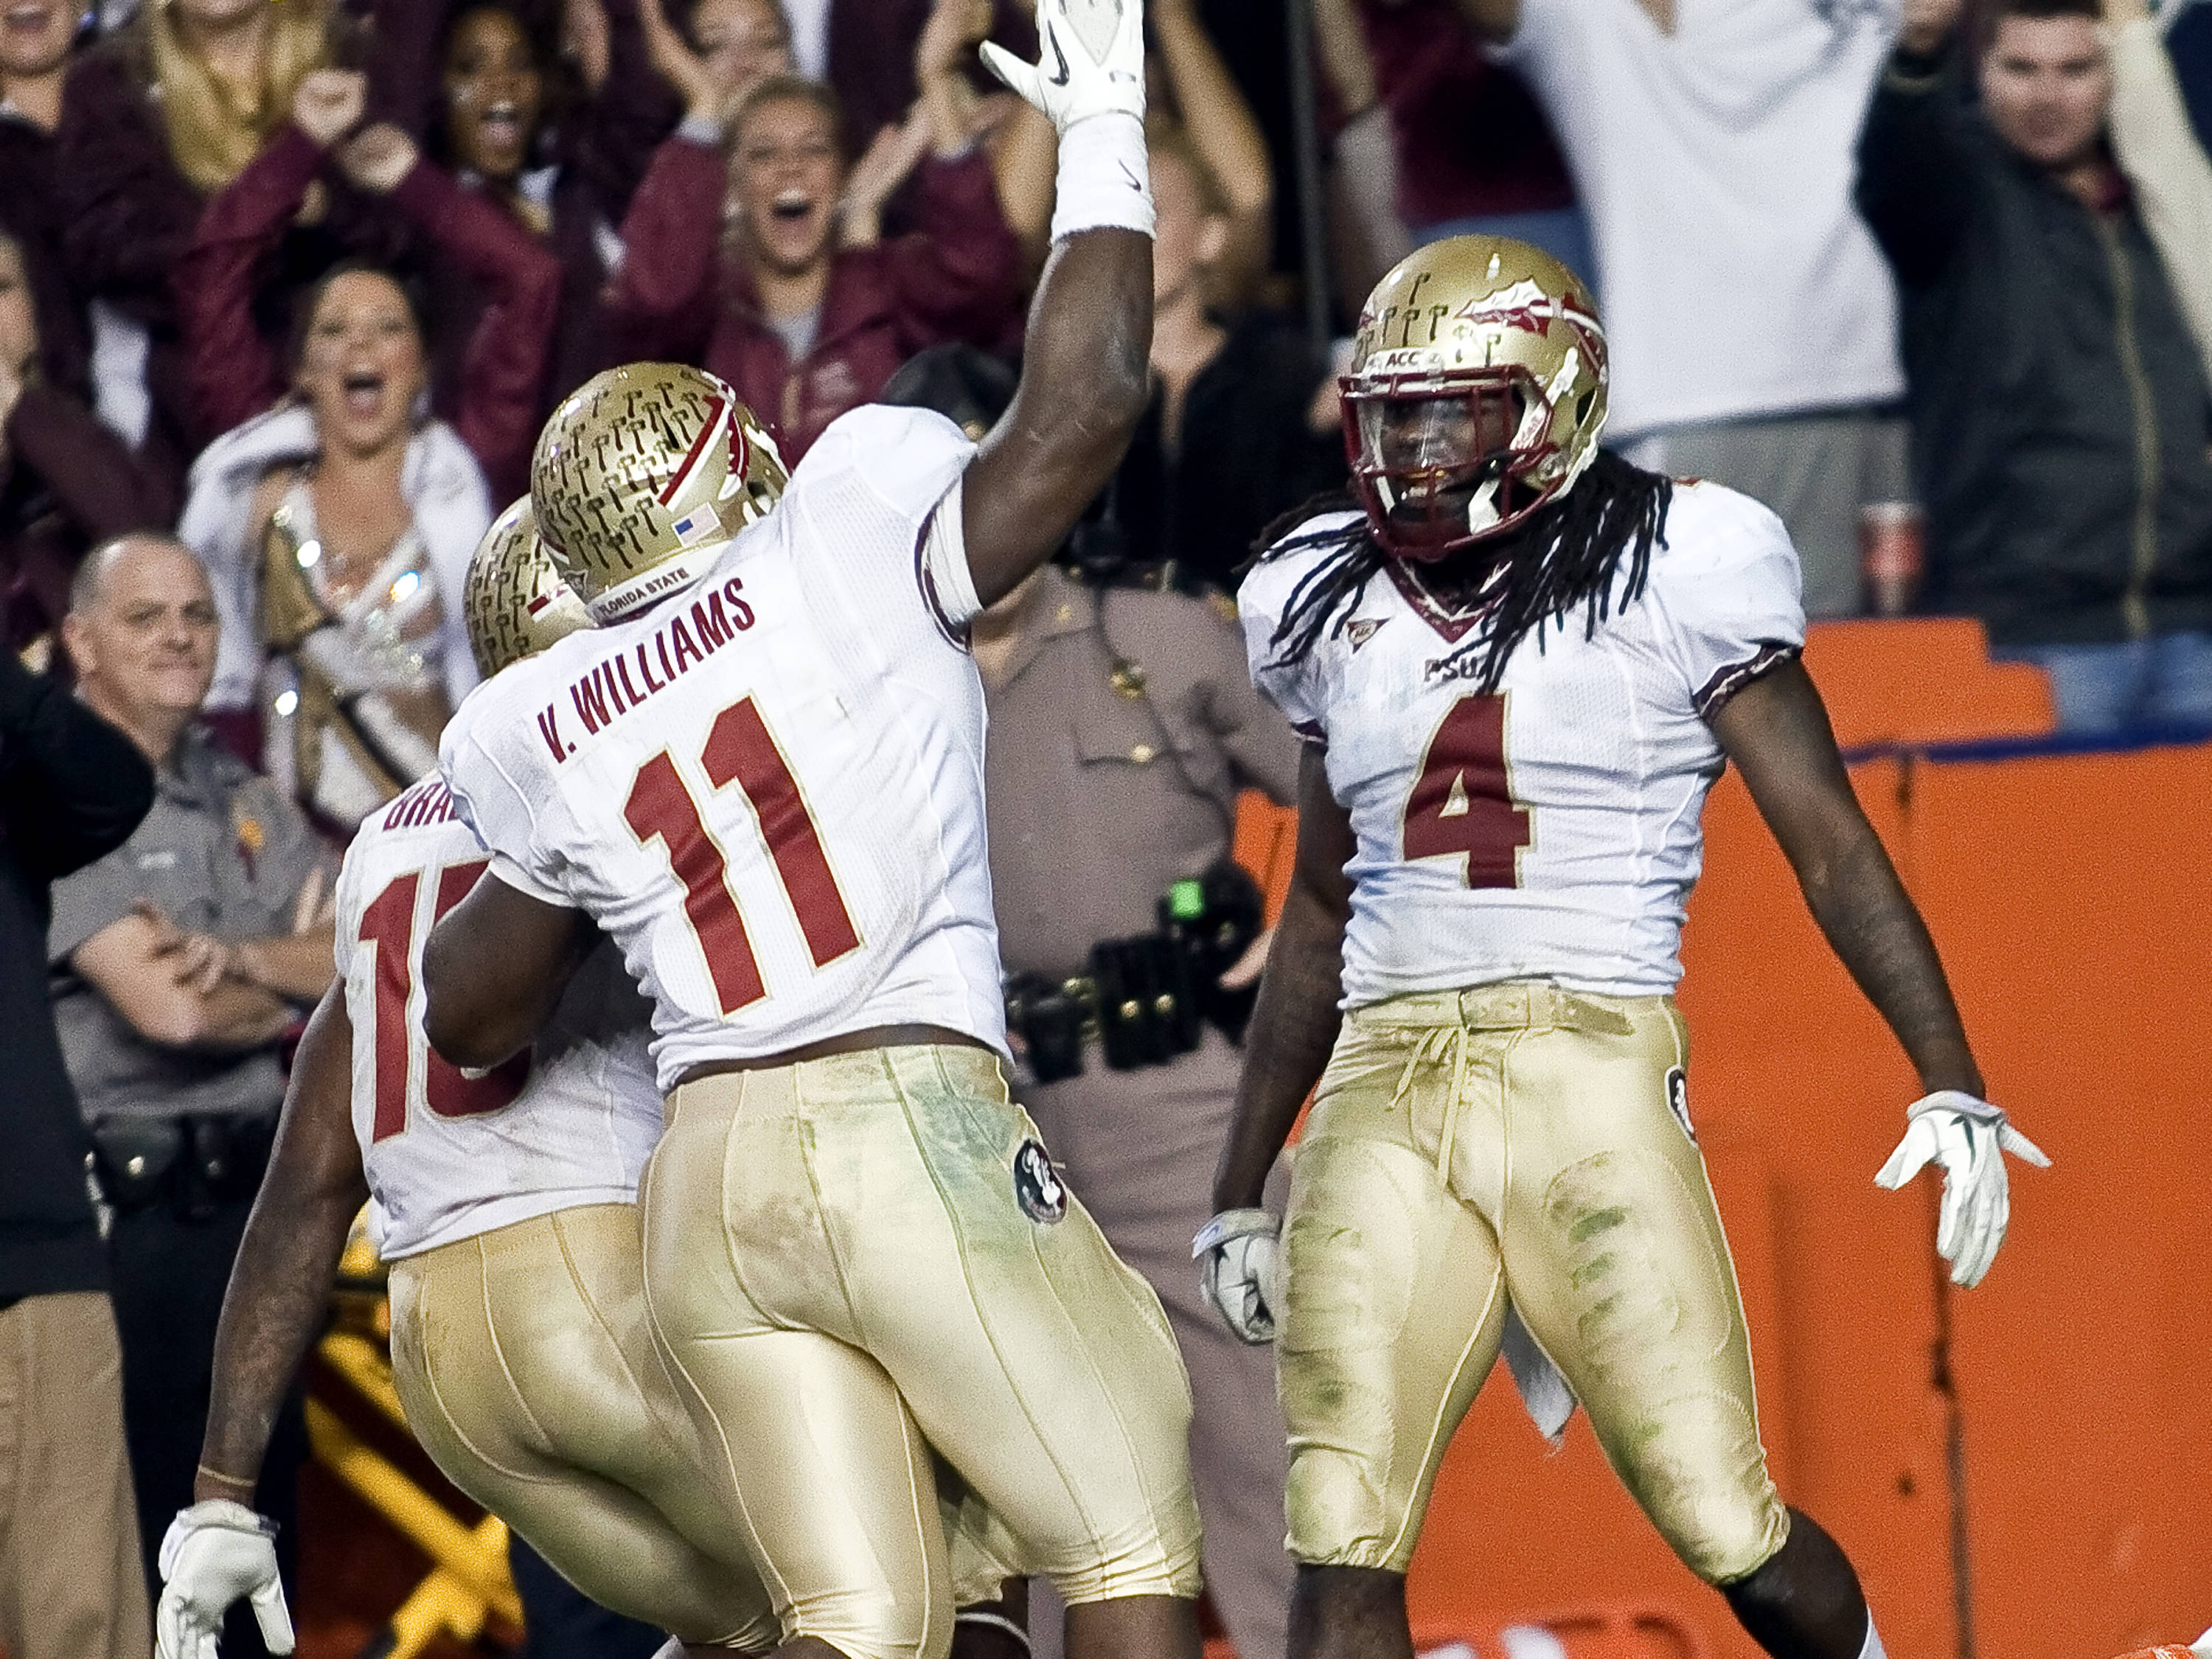 Terrance Parks (4) celebrates his pick-6 to seal the victory for the Noles over the Gators in the Swamp.  It marked Florida State's first victory in Gainesville since 2003.